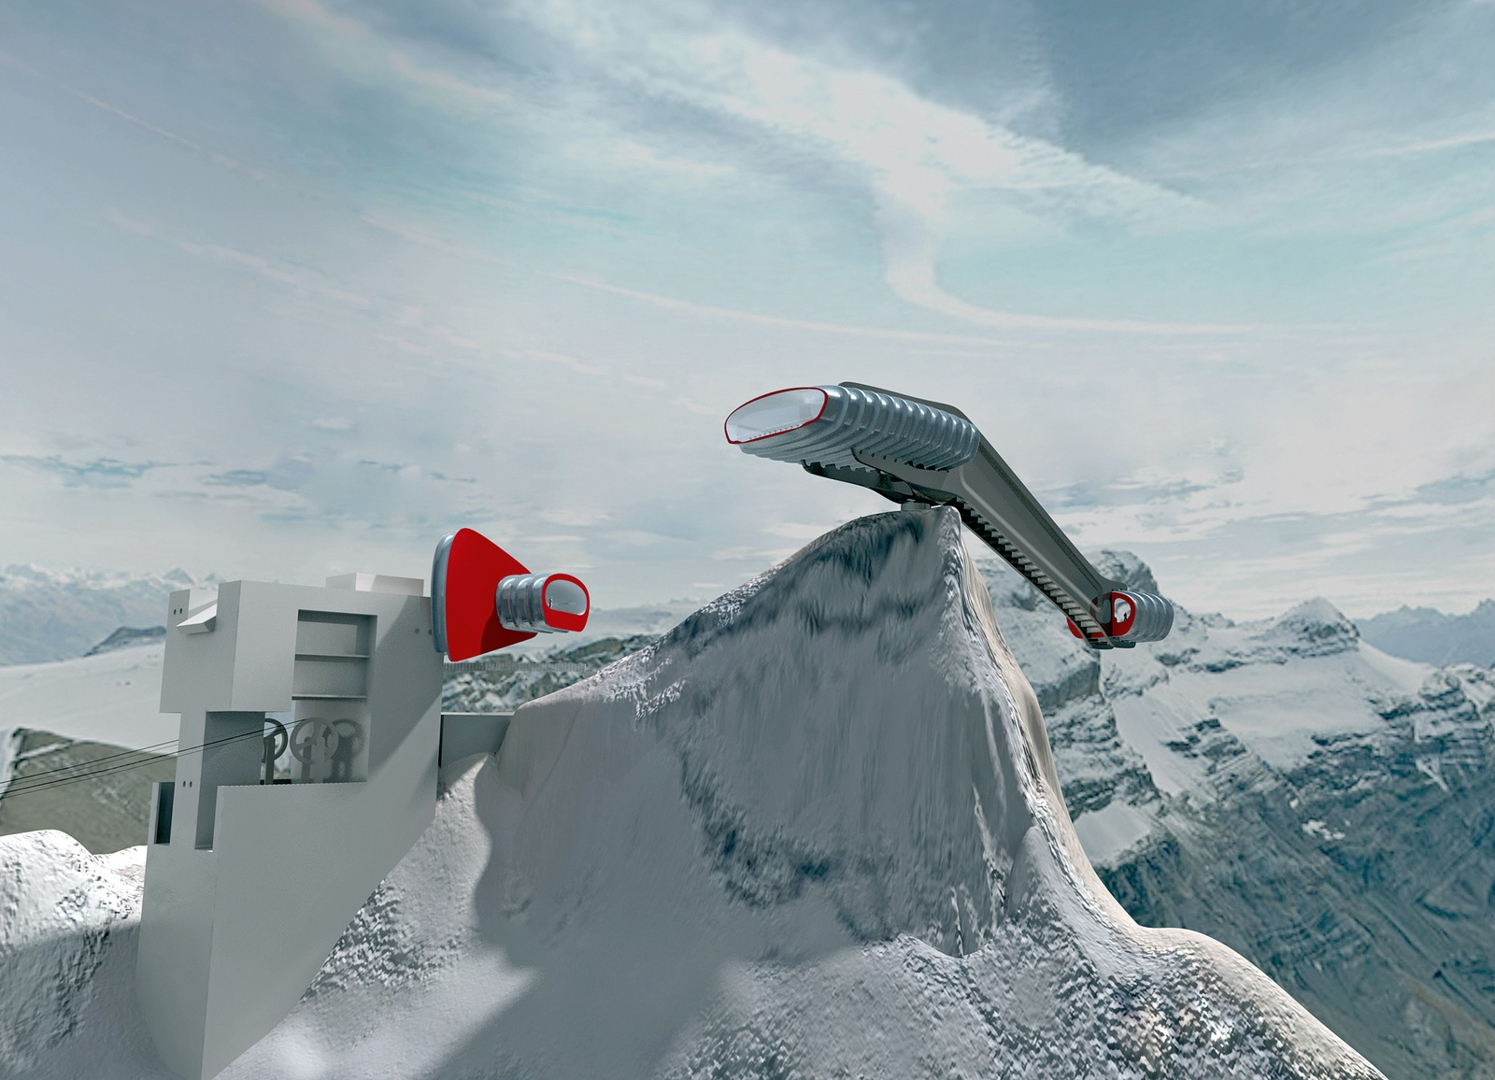 Panoramic Restaurant at Les Diablerets, Gstaad. Project. Video. 2007 image